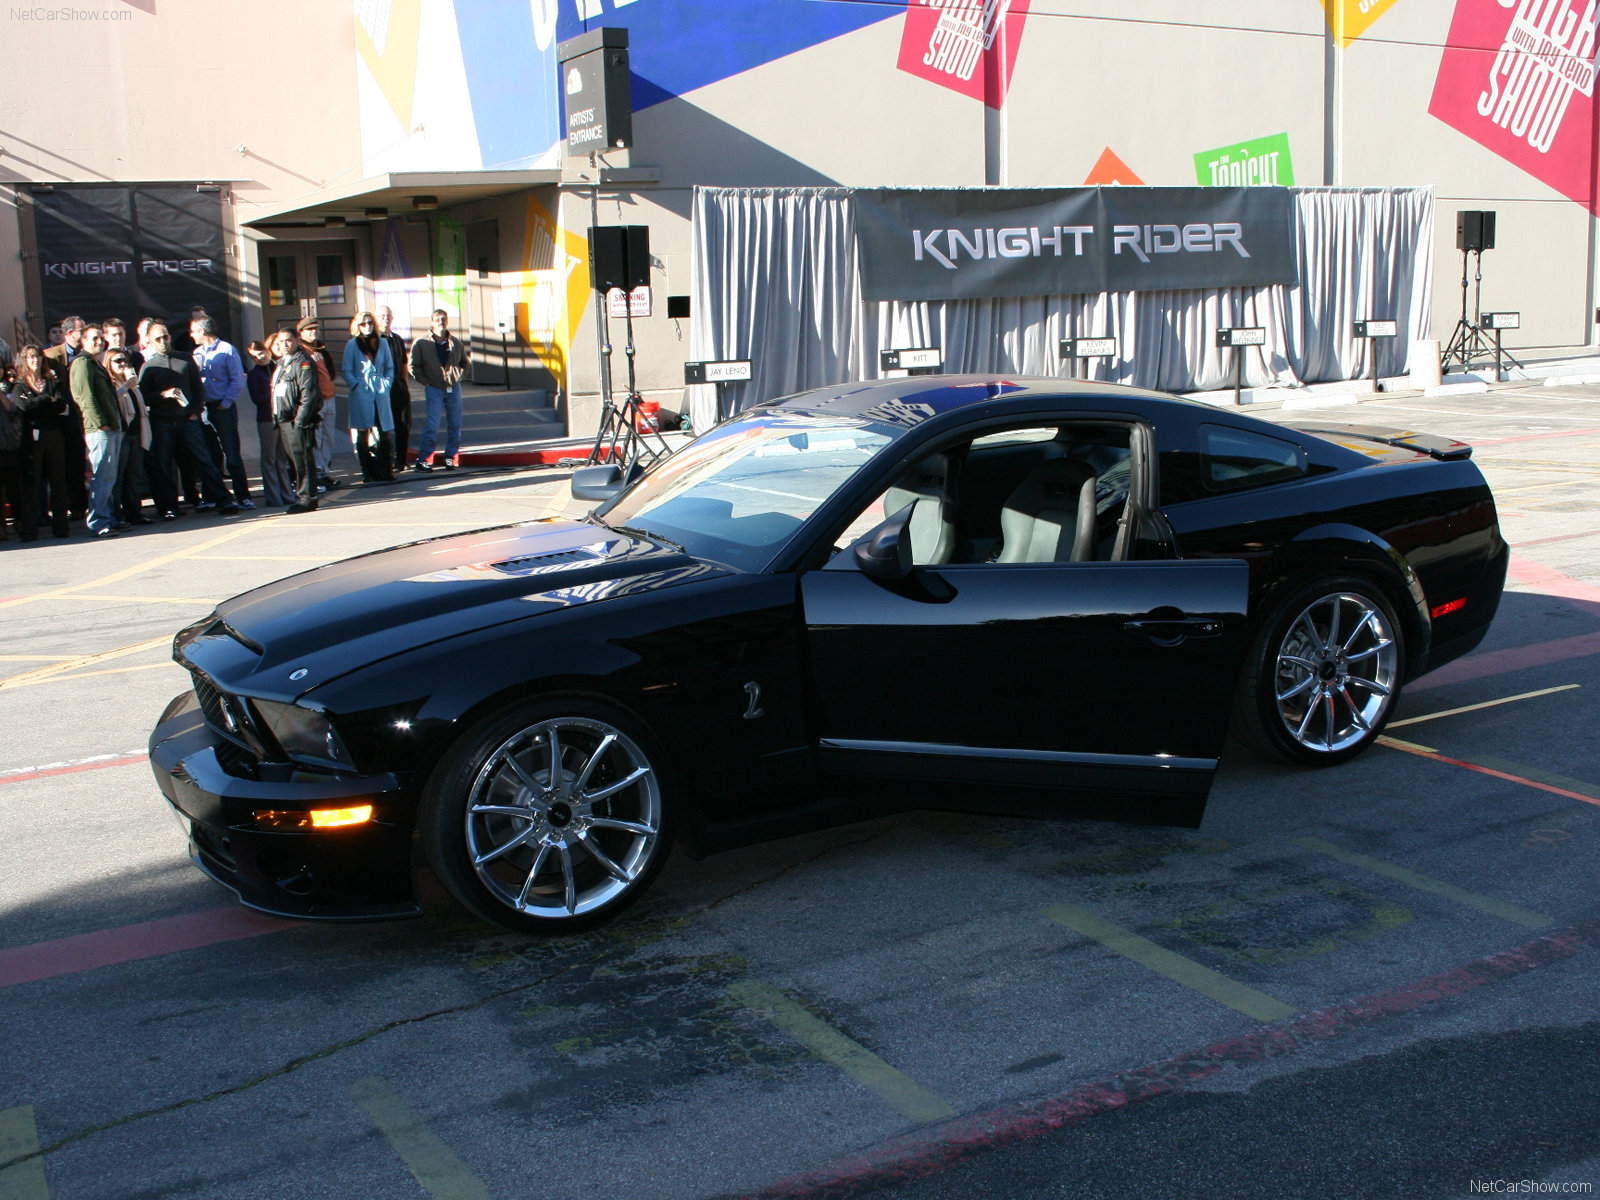 Ford Mustang Shelby GT500KR KITT photo 50119